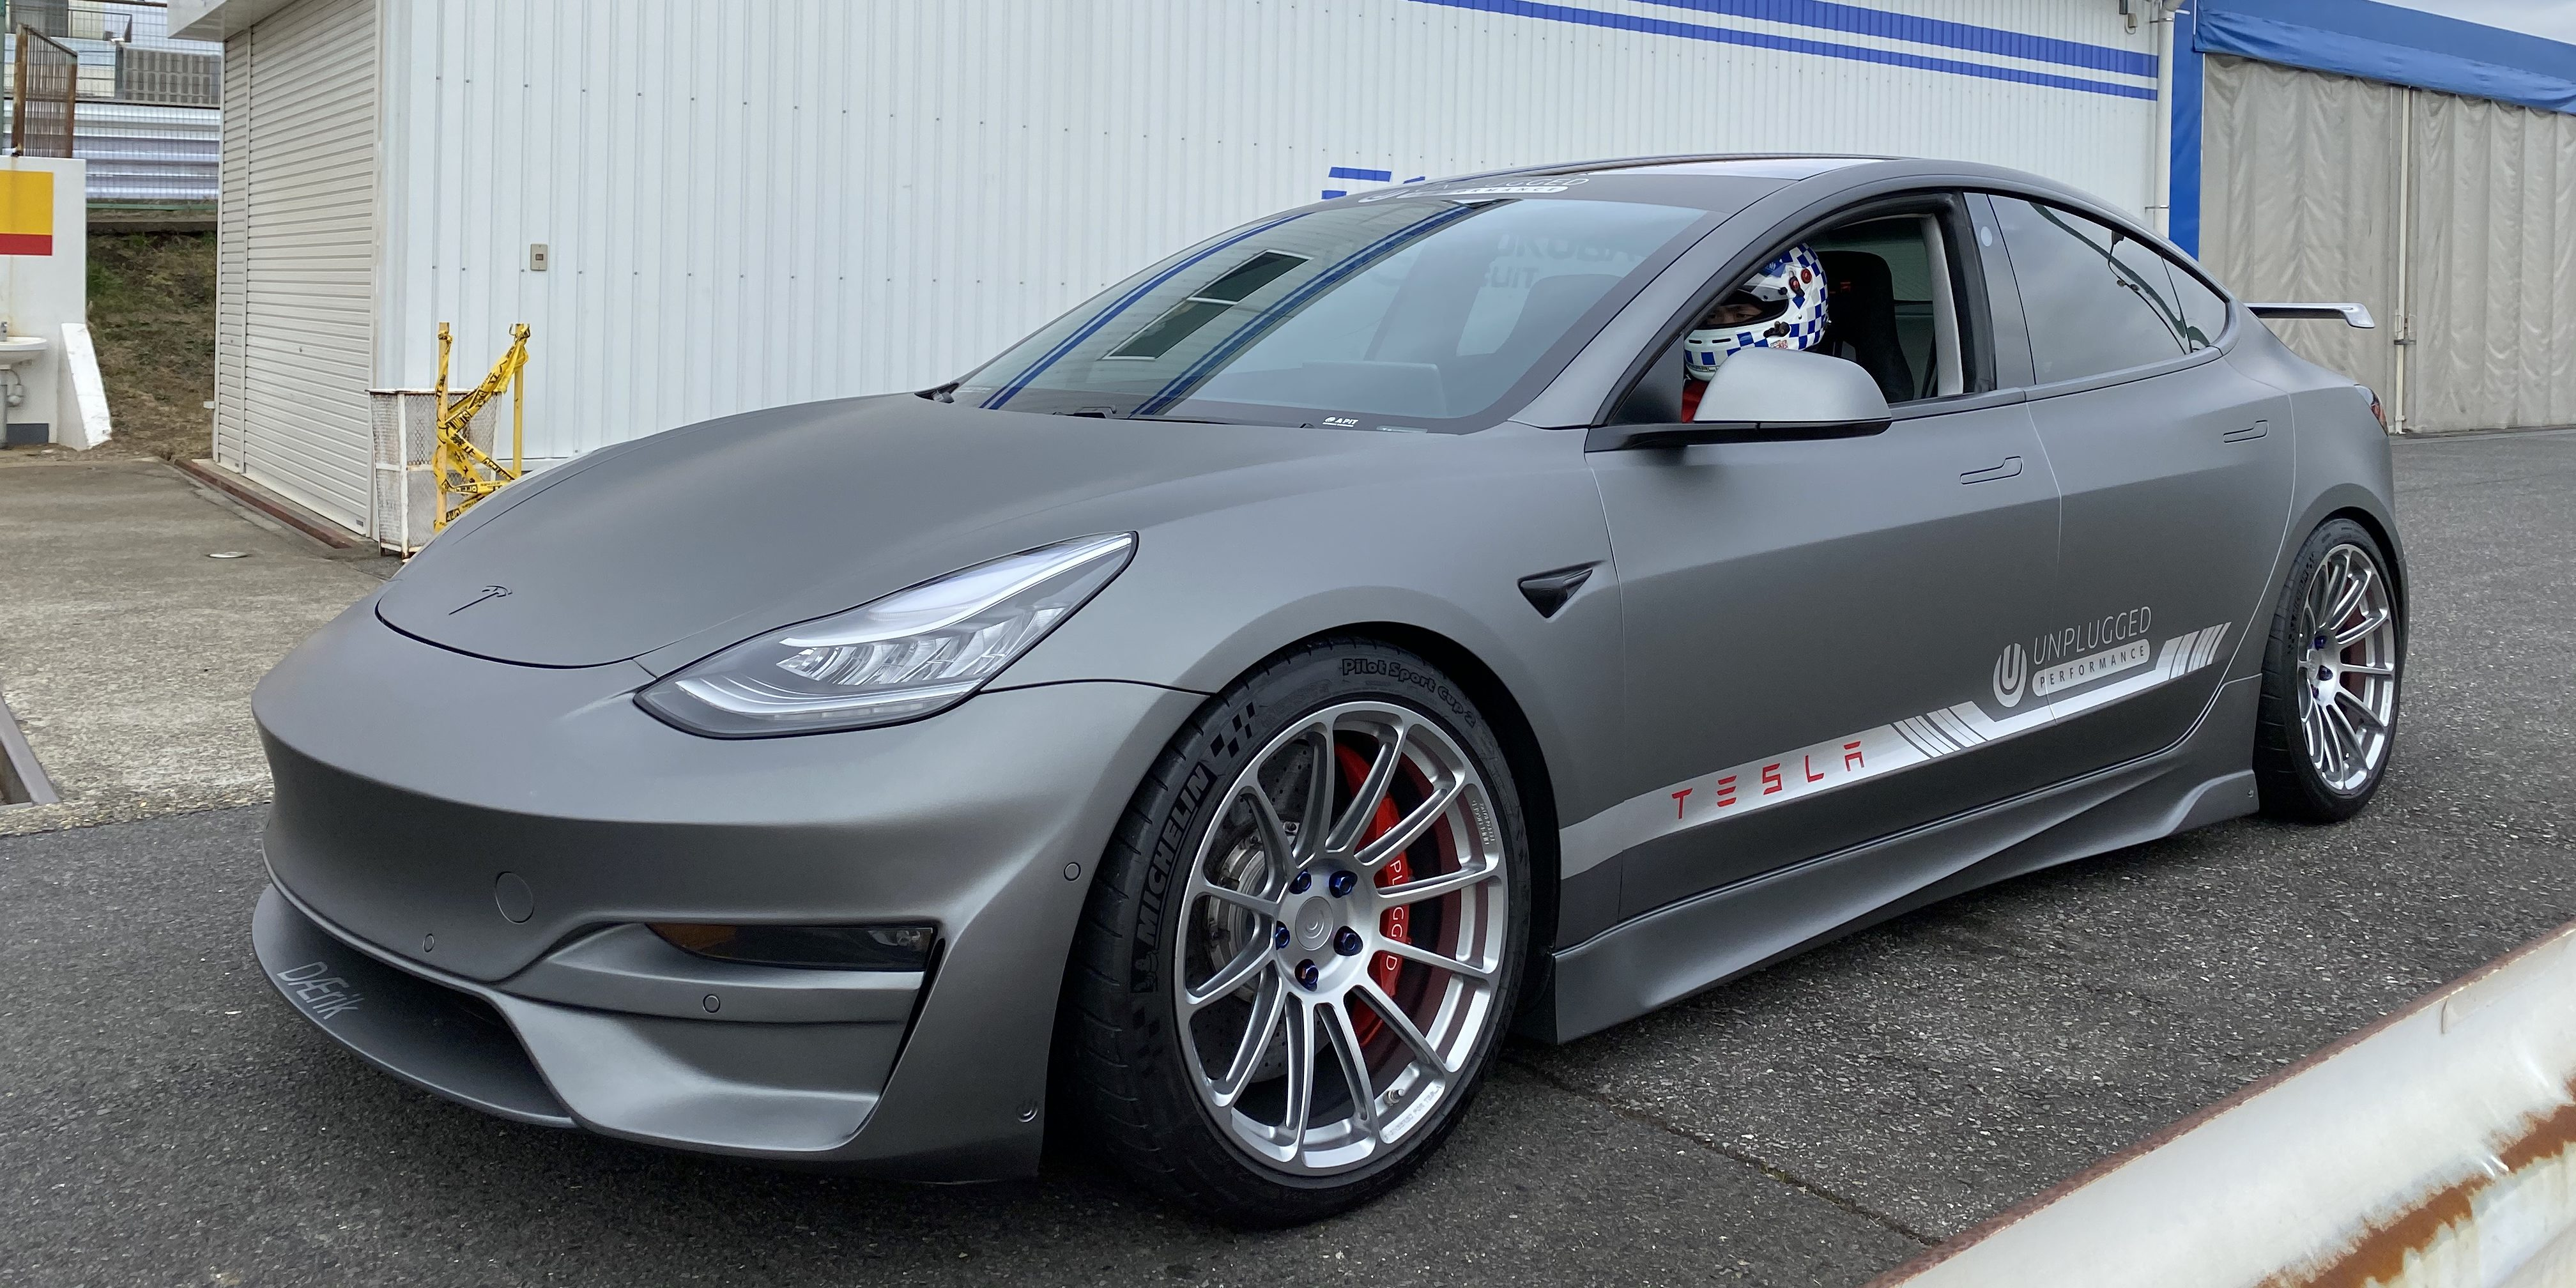 Tesla Model 3 with mods achieves competitive lap with McLaren F1 on famous racetrack - Electrek